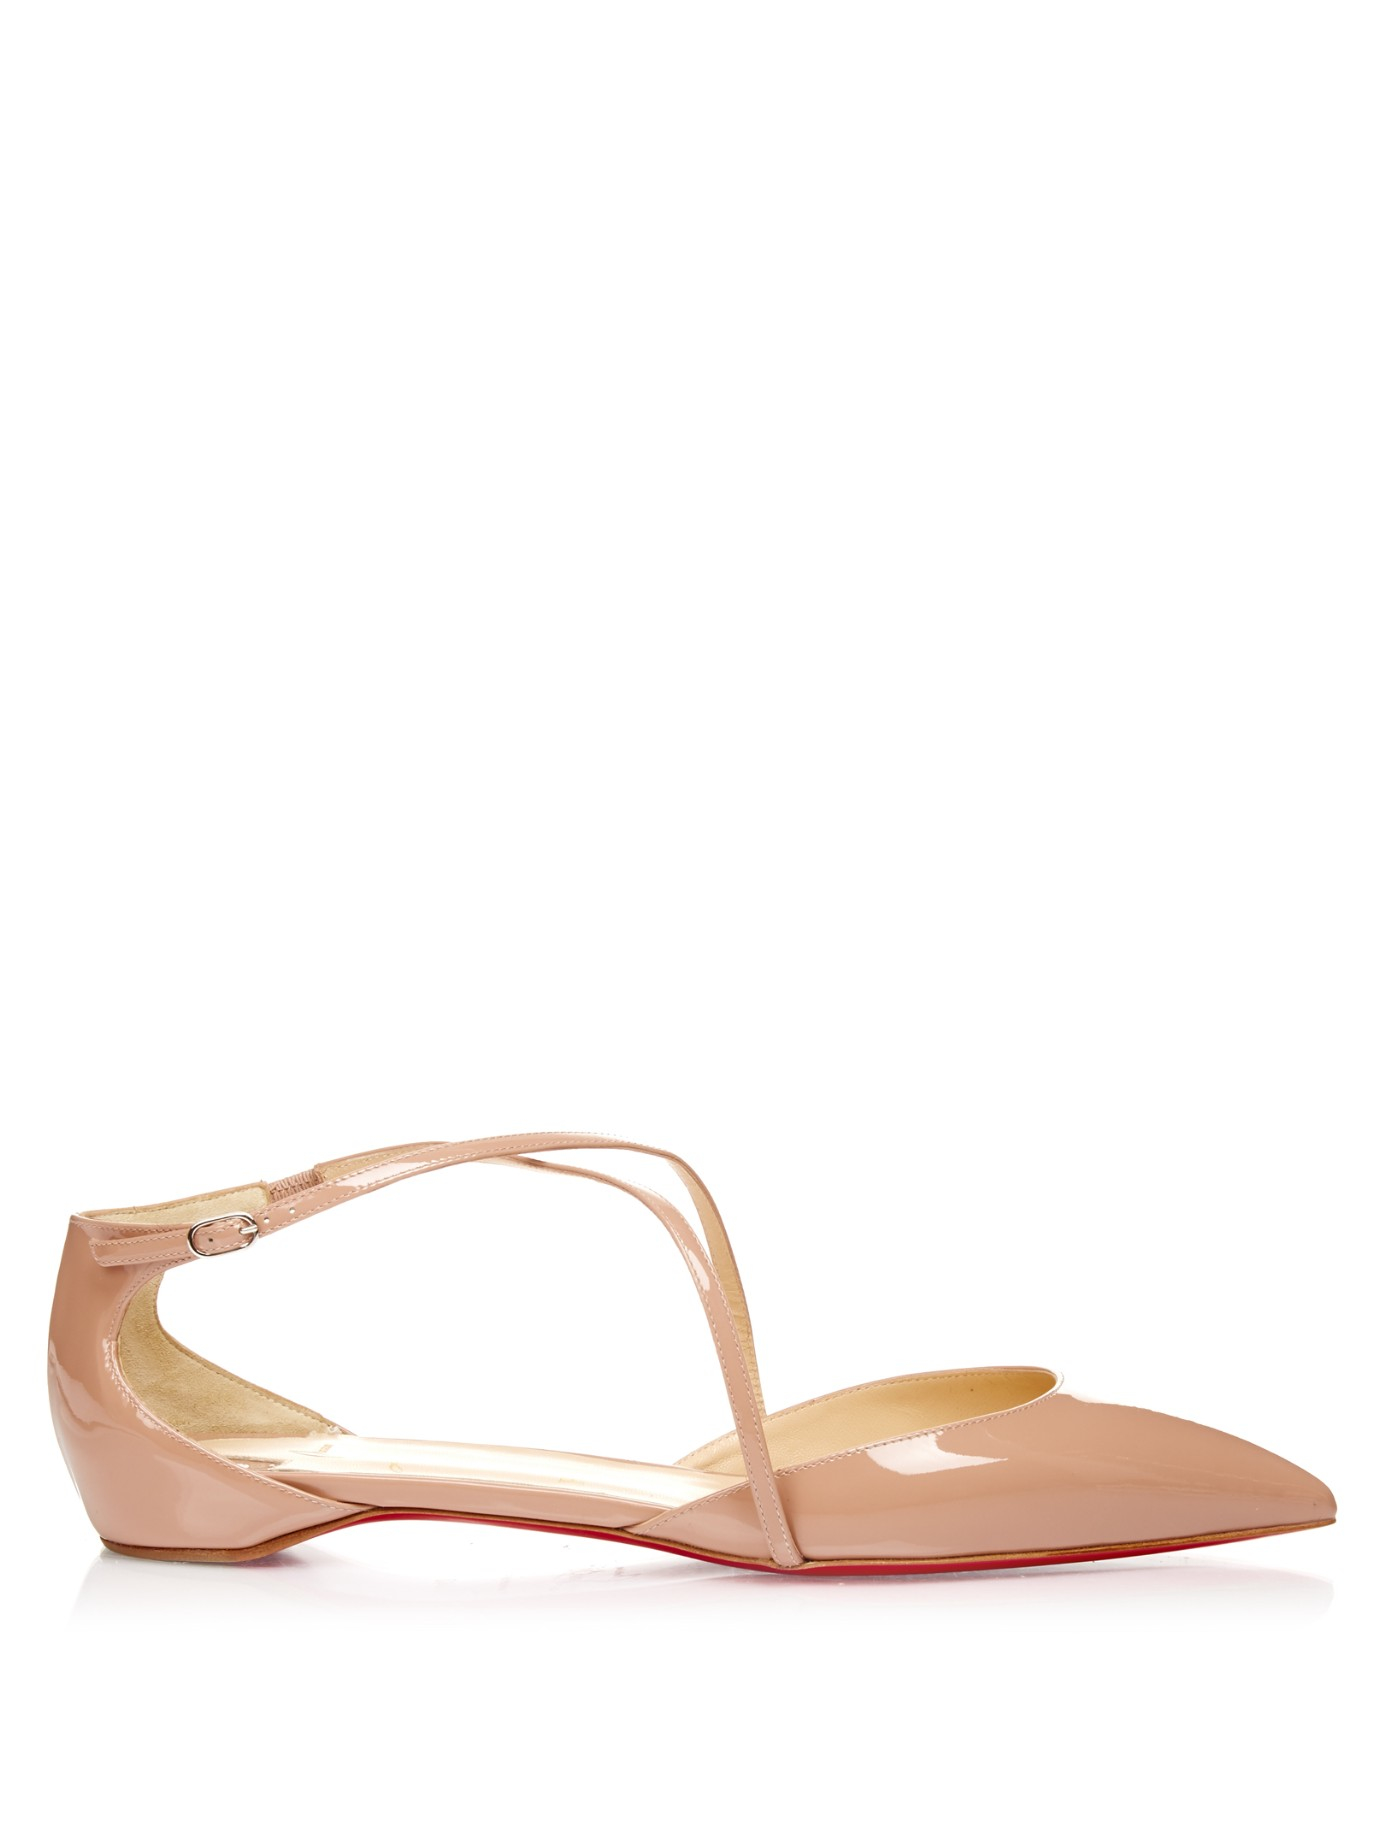 d0f83b27f59c ... hot lyst christian louboutin crosspiga patent leather flats in natural  dcbd7 062f7